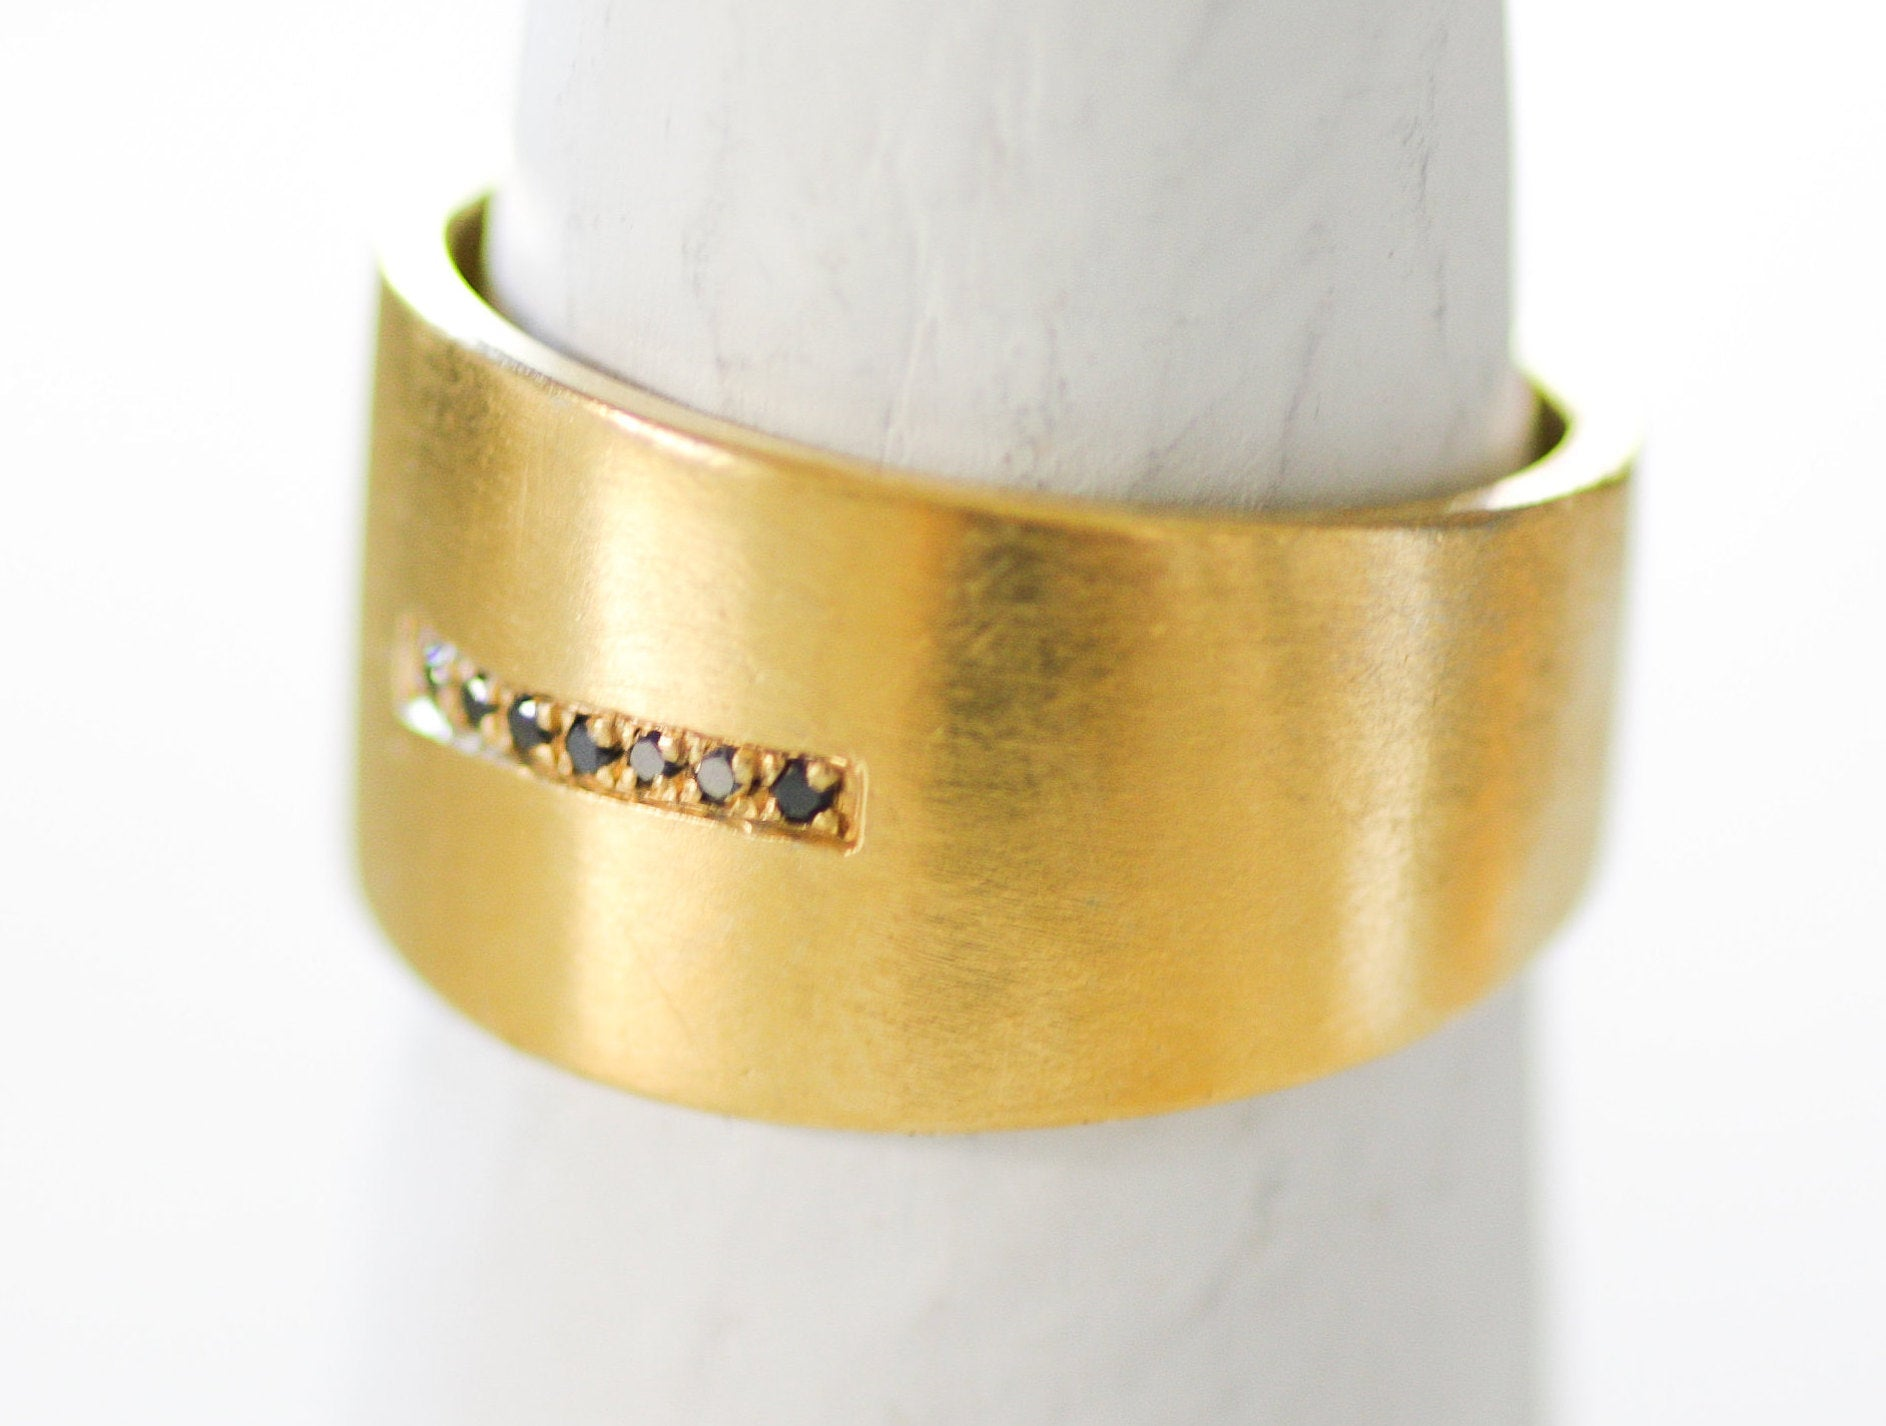 14K Yellow Gold Wide Band Ring Set with 7 Black Diamonds - hs